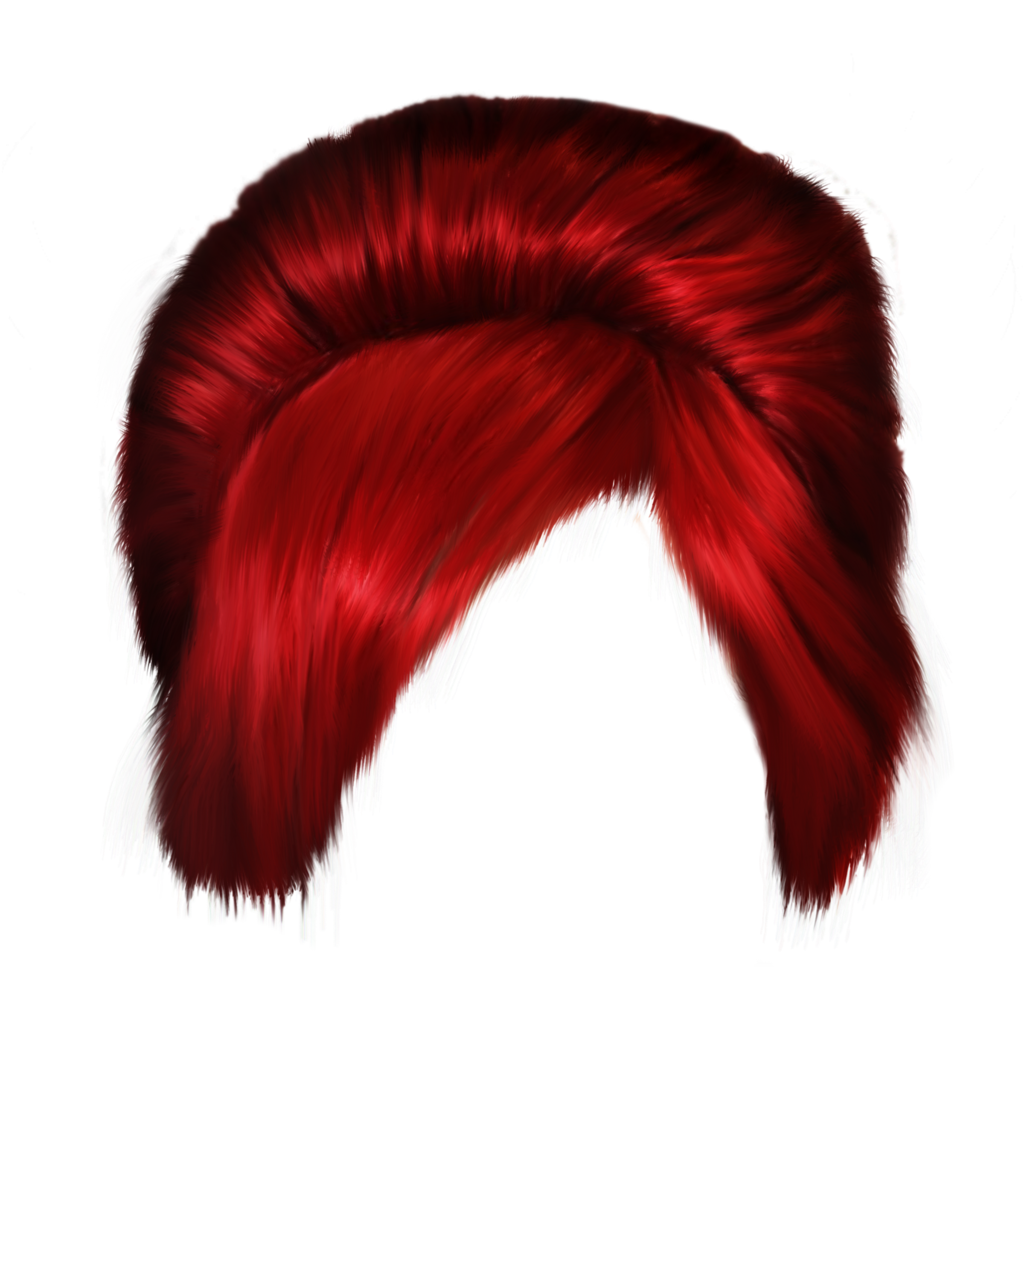 Red Hair clipart wig #12